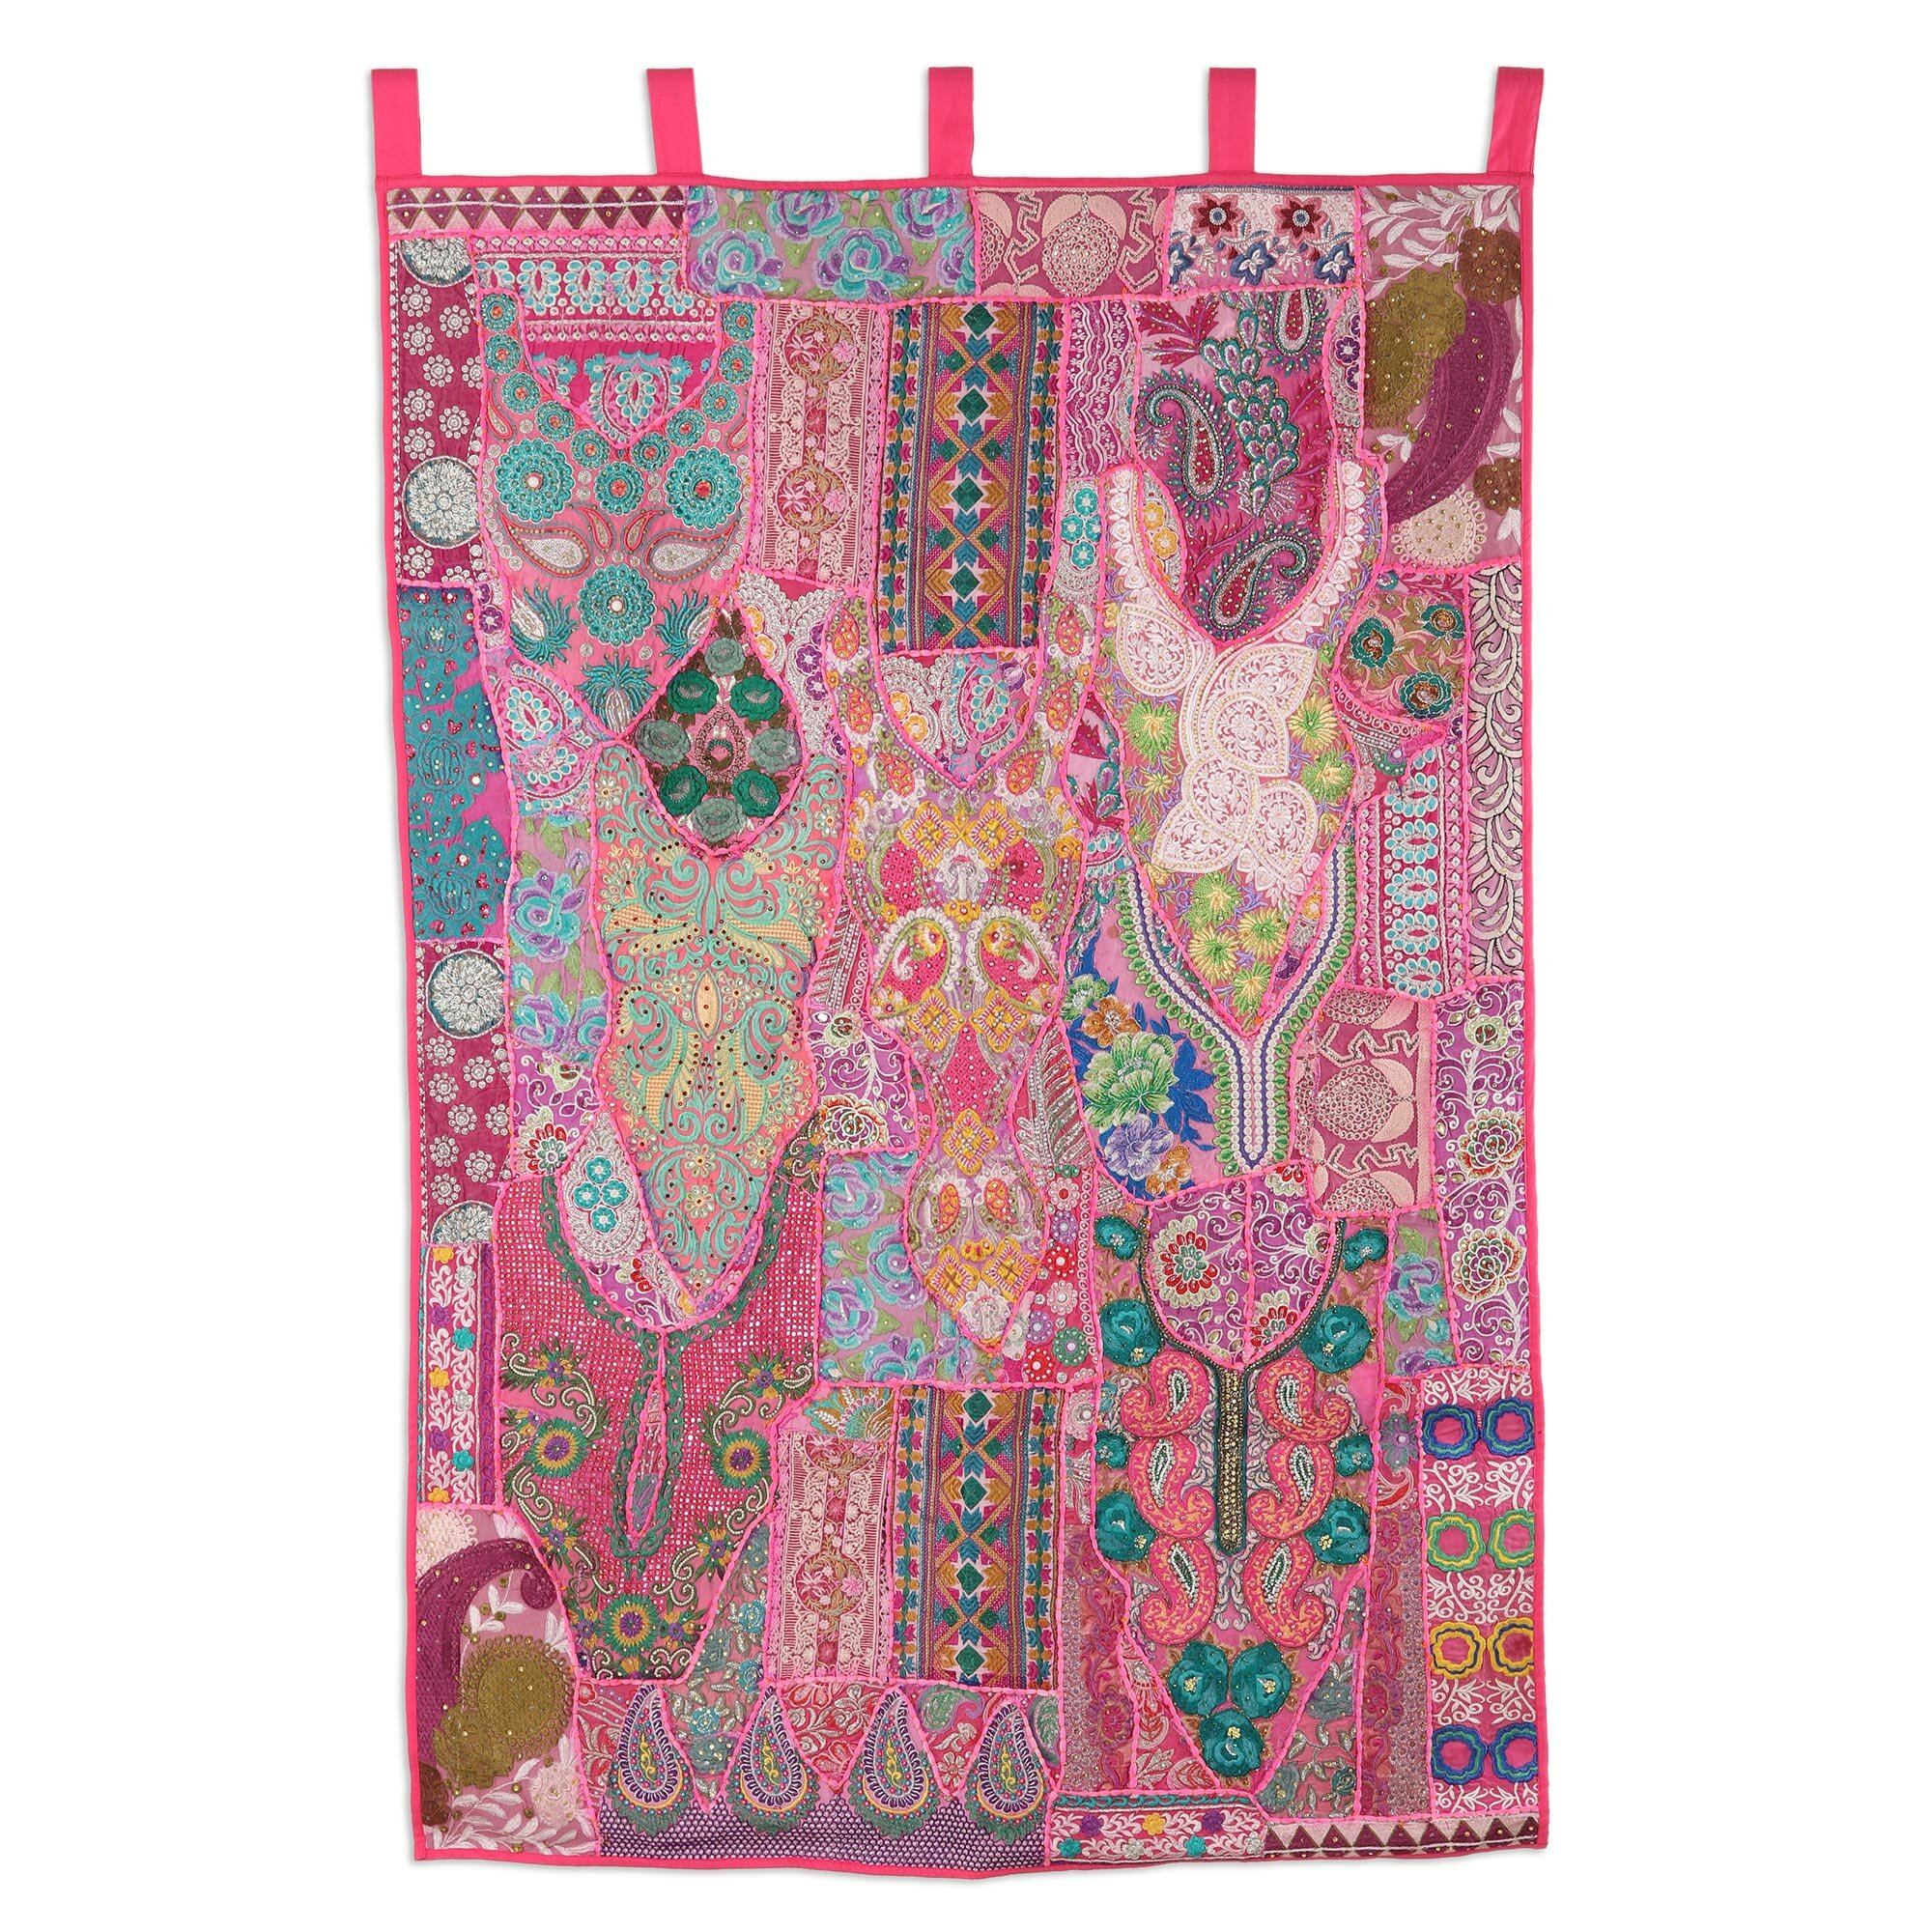 Handmade Jaipur Classic Recycled Cotton Blend Patchwork Wall Hanging Pertaining To Most Recent Blended Fabric Klimt Tree Of Life Wall Hangings (View 16 of 20)